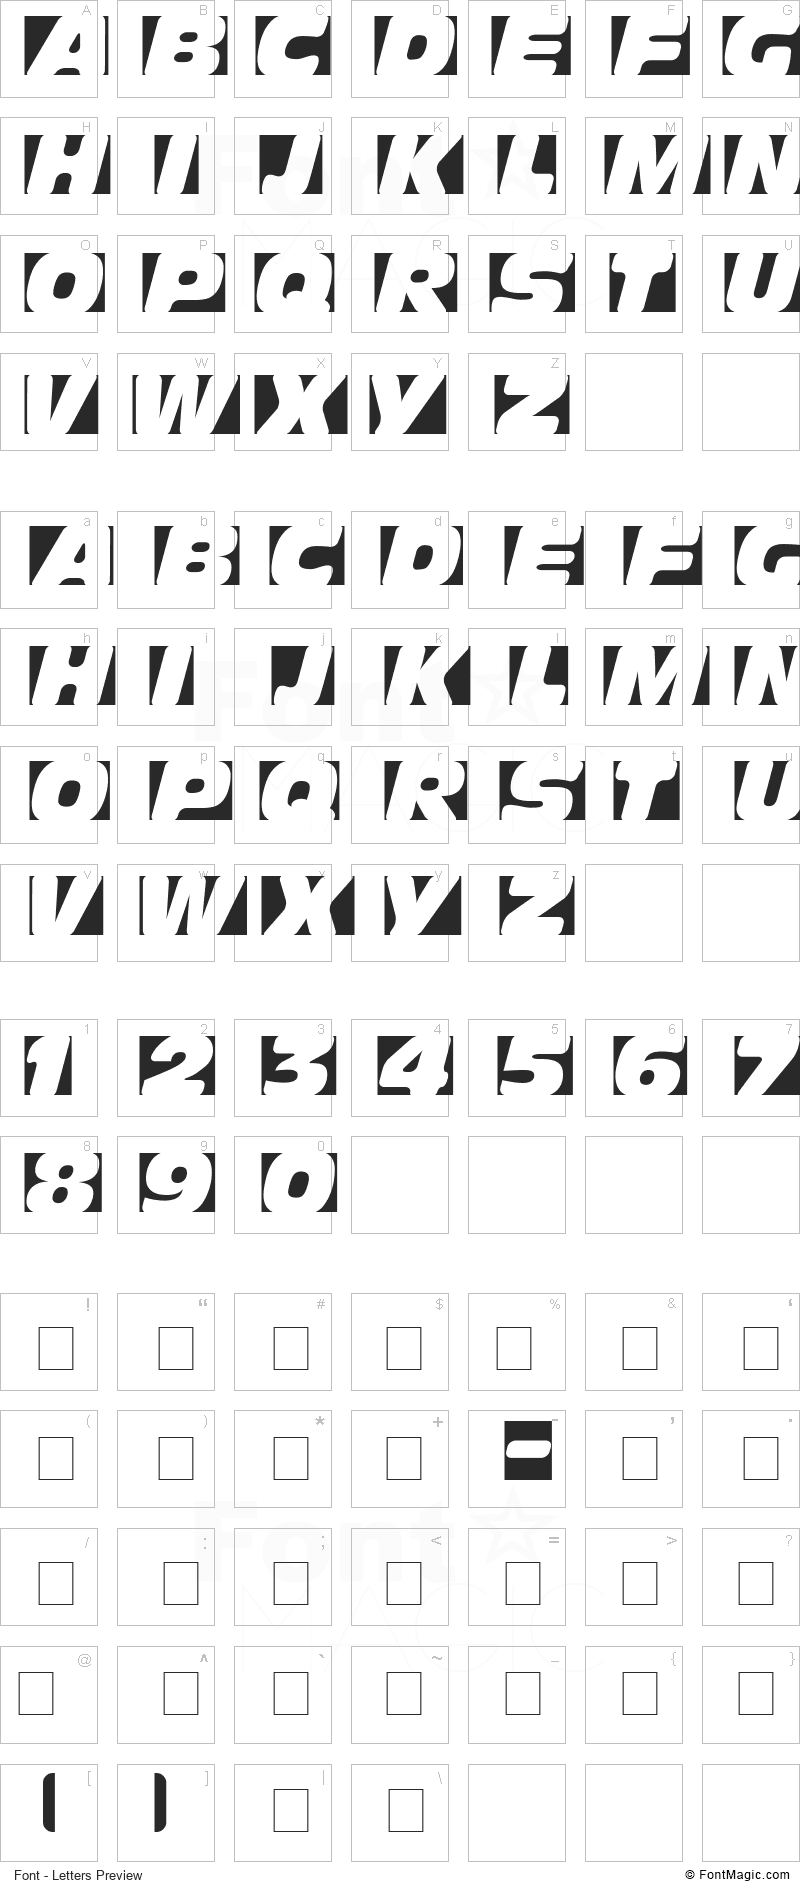 Obliquo Font - All Latters Preview Chart